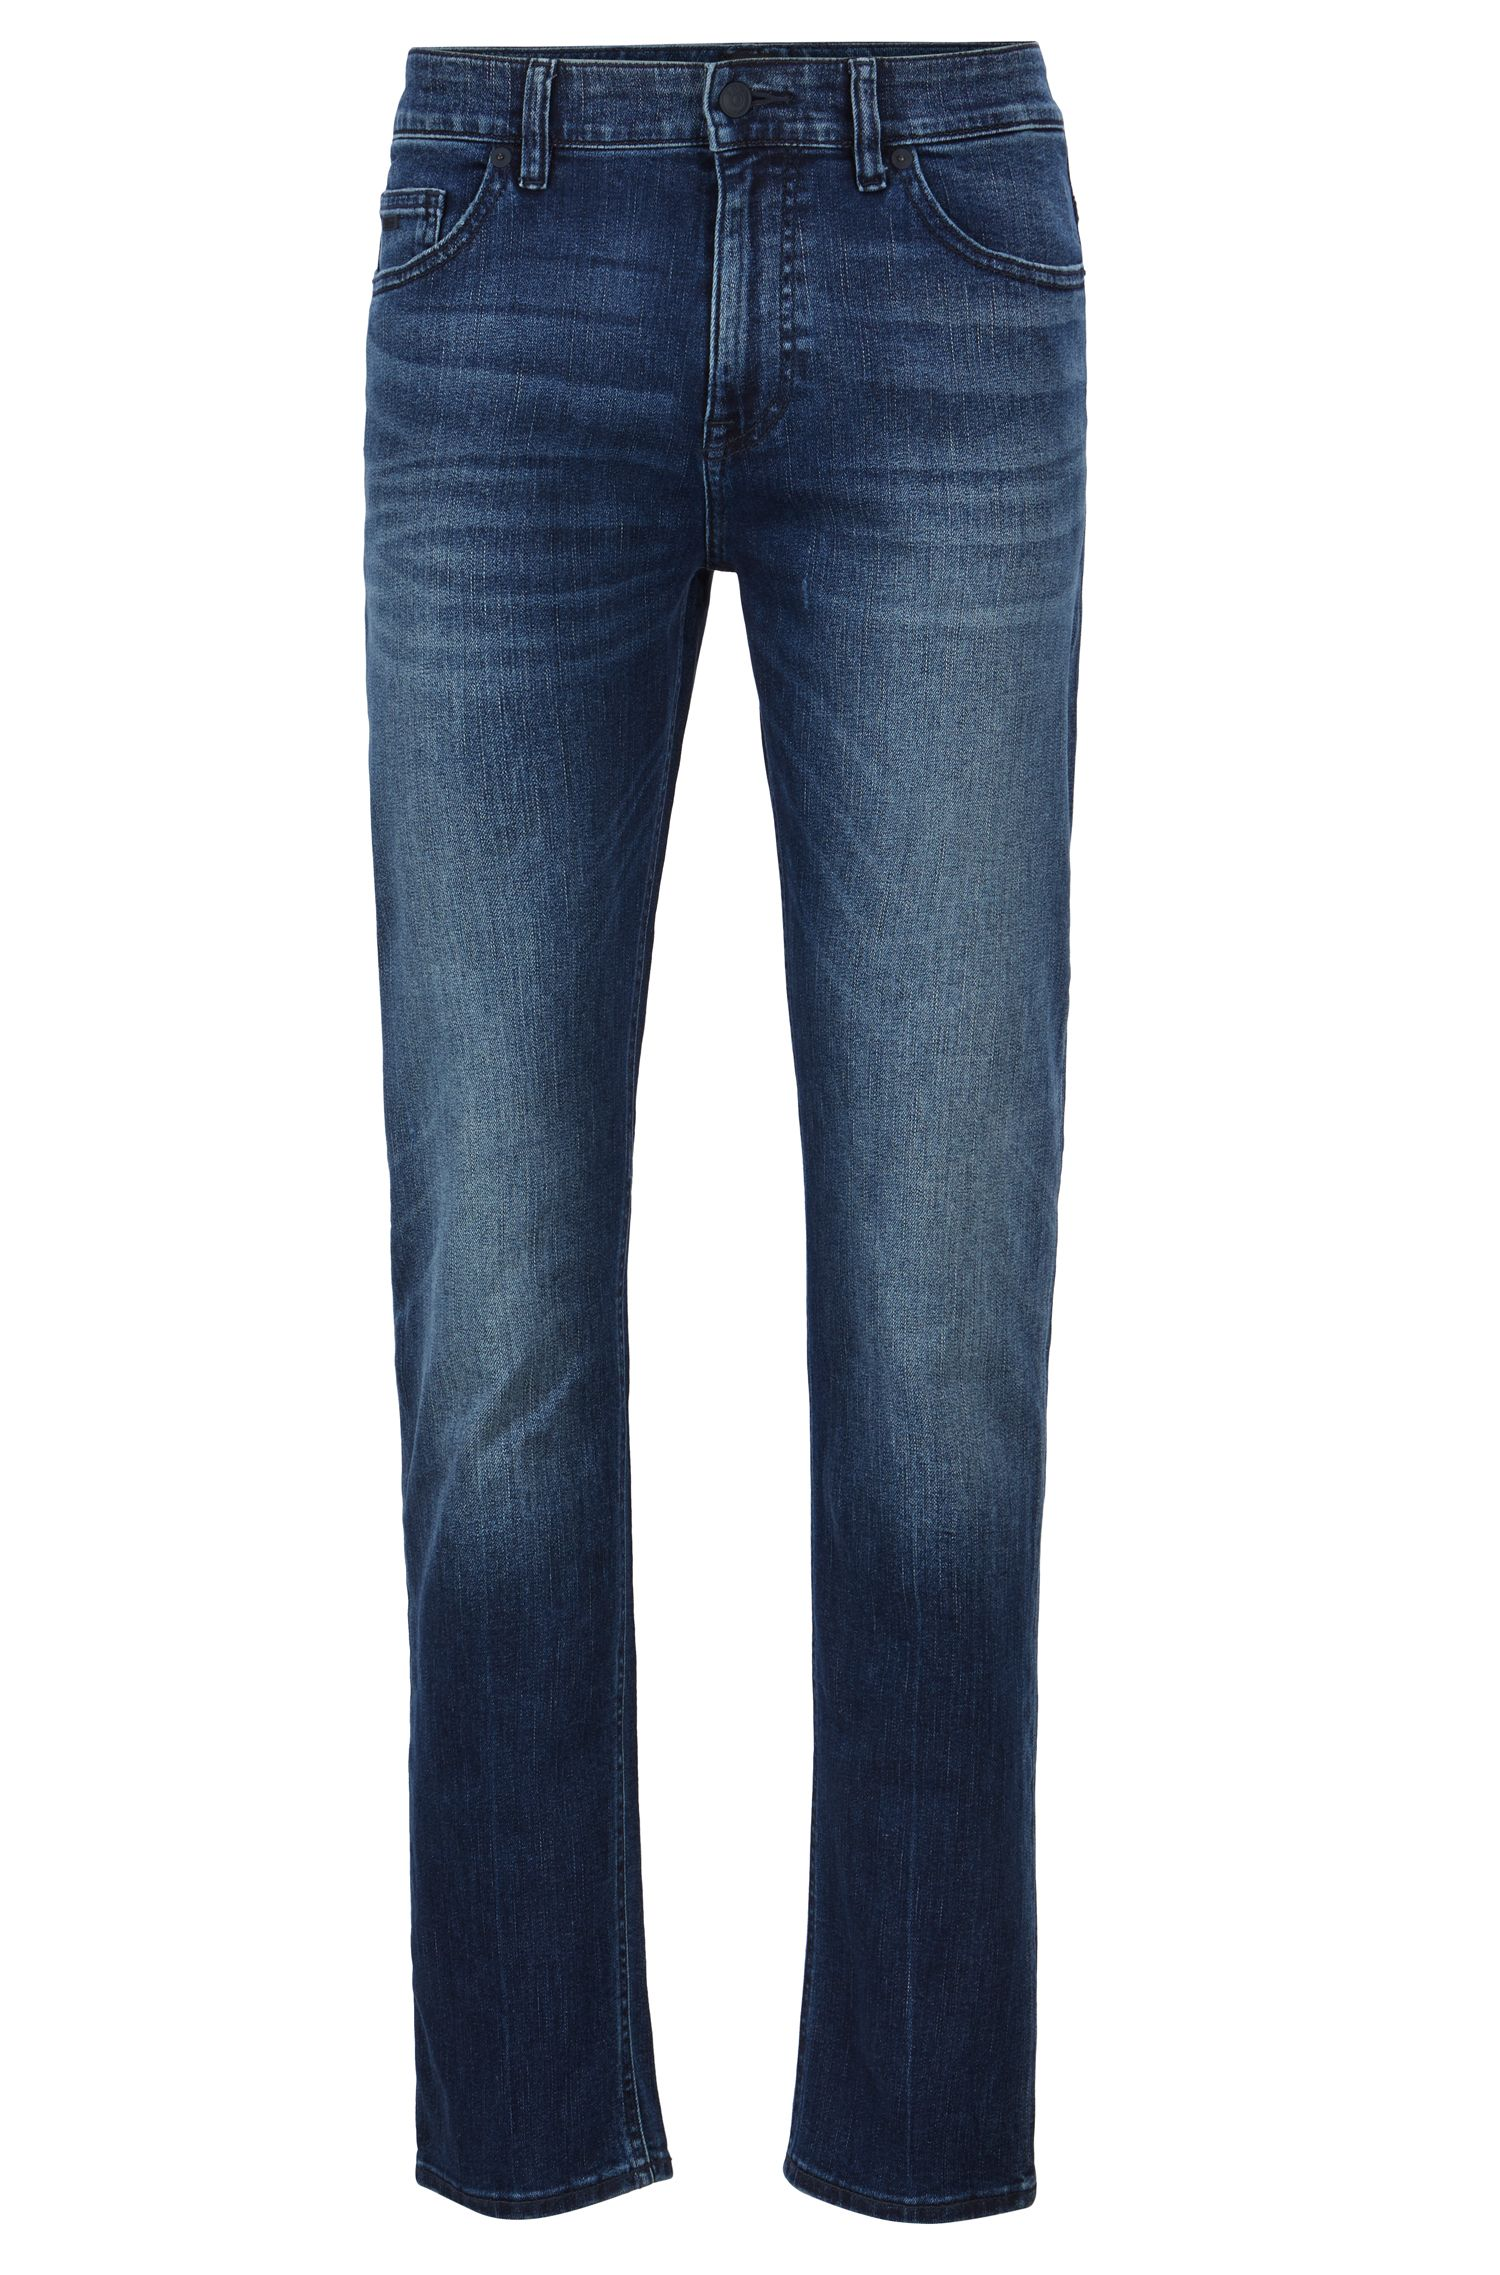 Slim-Fit Jeans aus Super-Stretch-Denim in Used-Optik, Blau